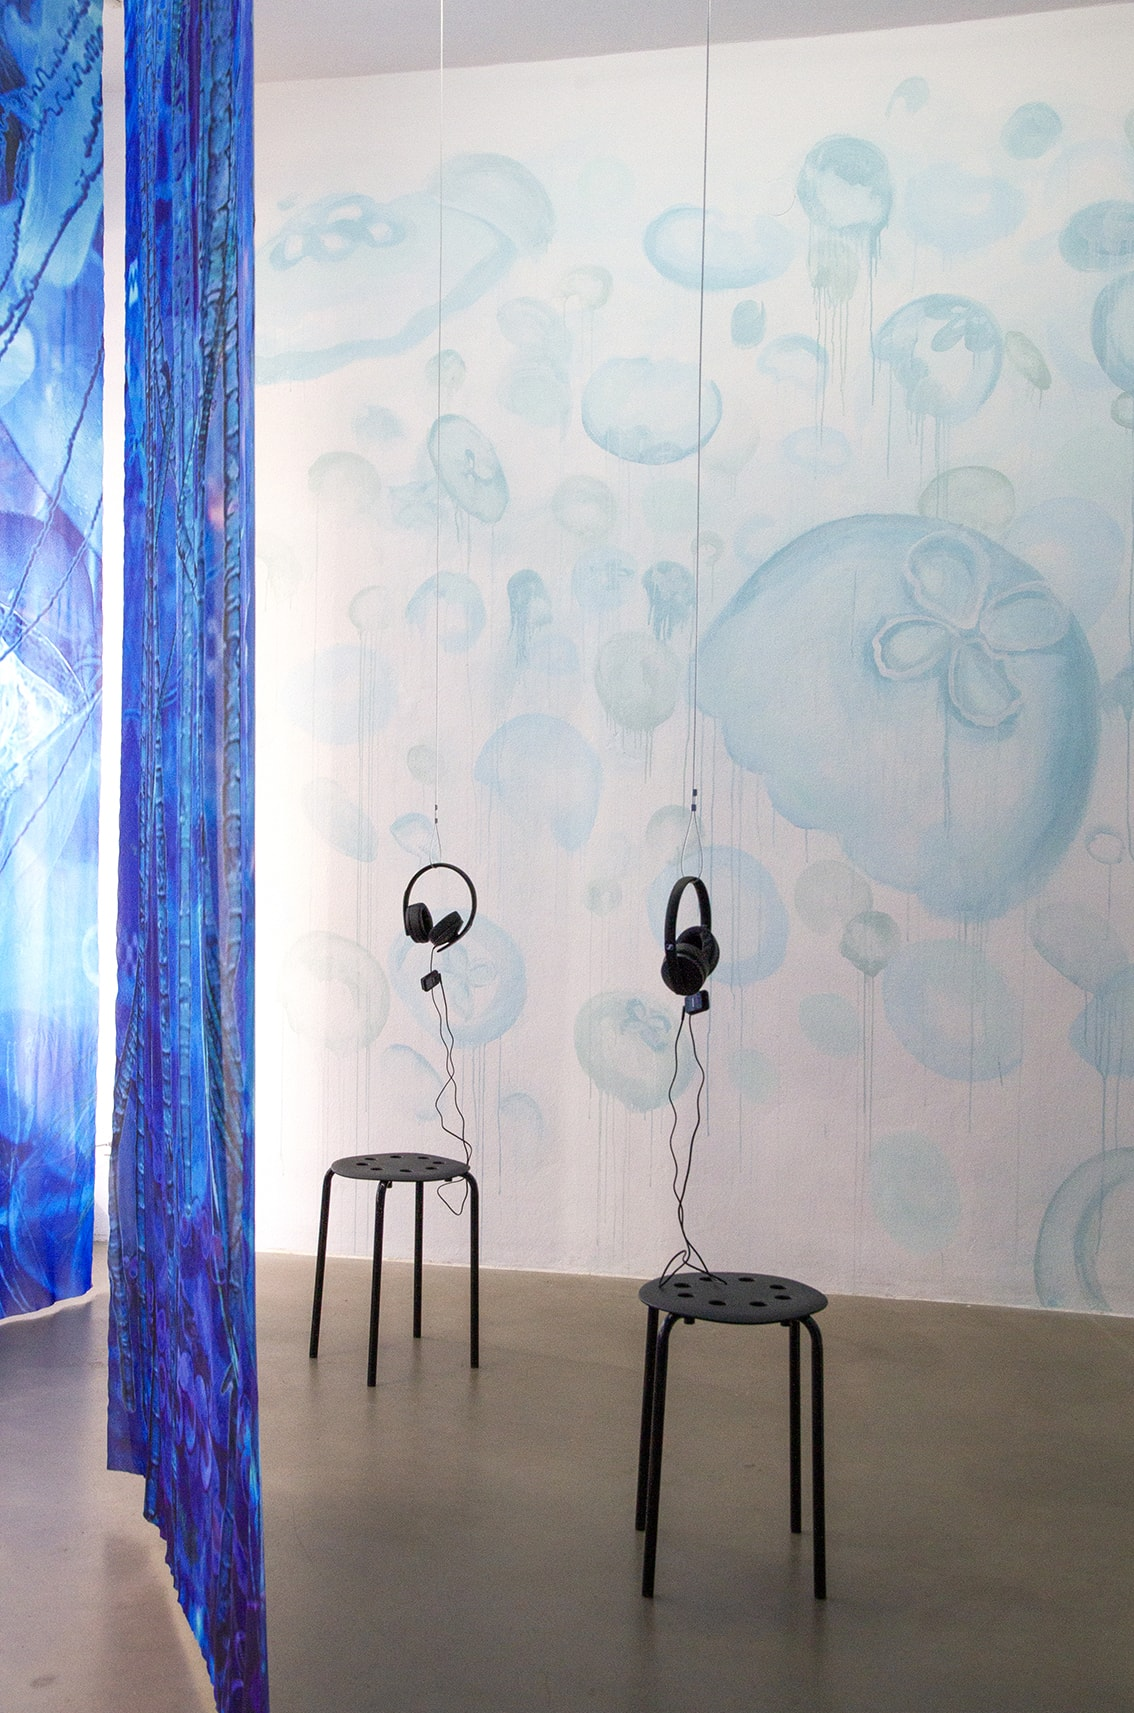 Installation view of Einen Riesigen Schwarm at Digital Art Space Munich - wall painting, digitally printed banners, and sound installation